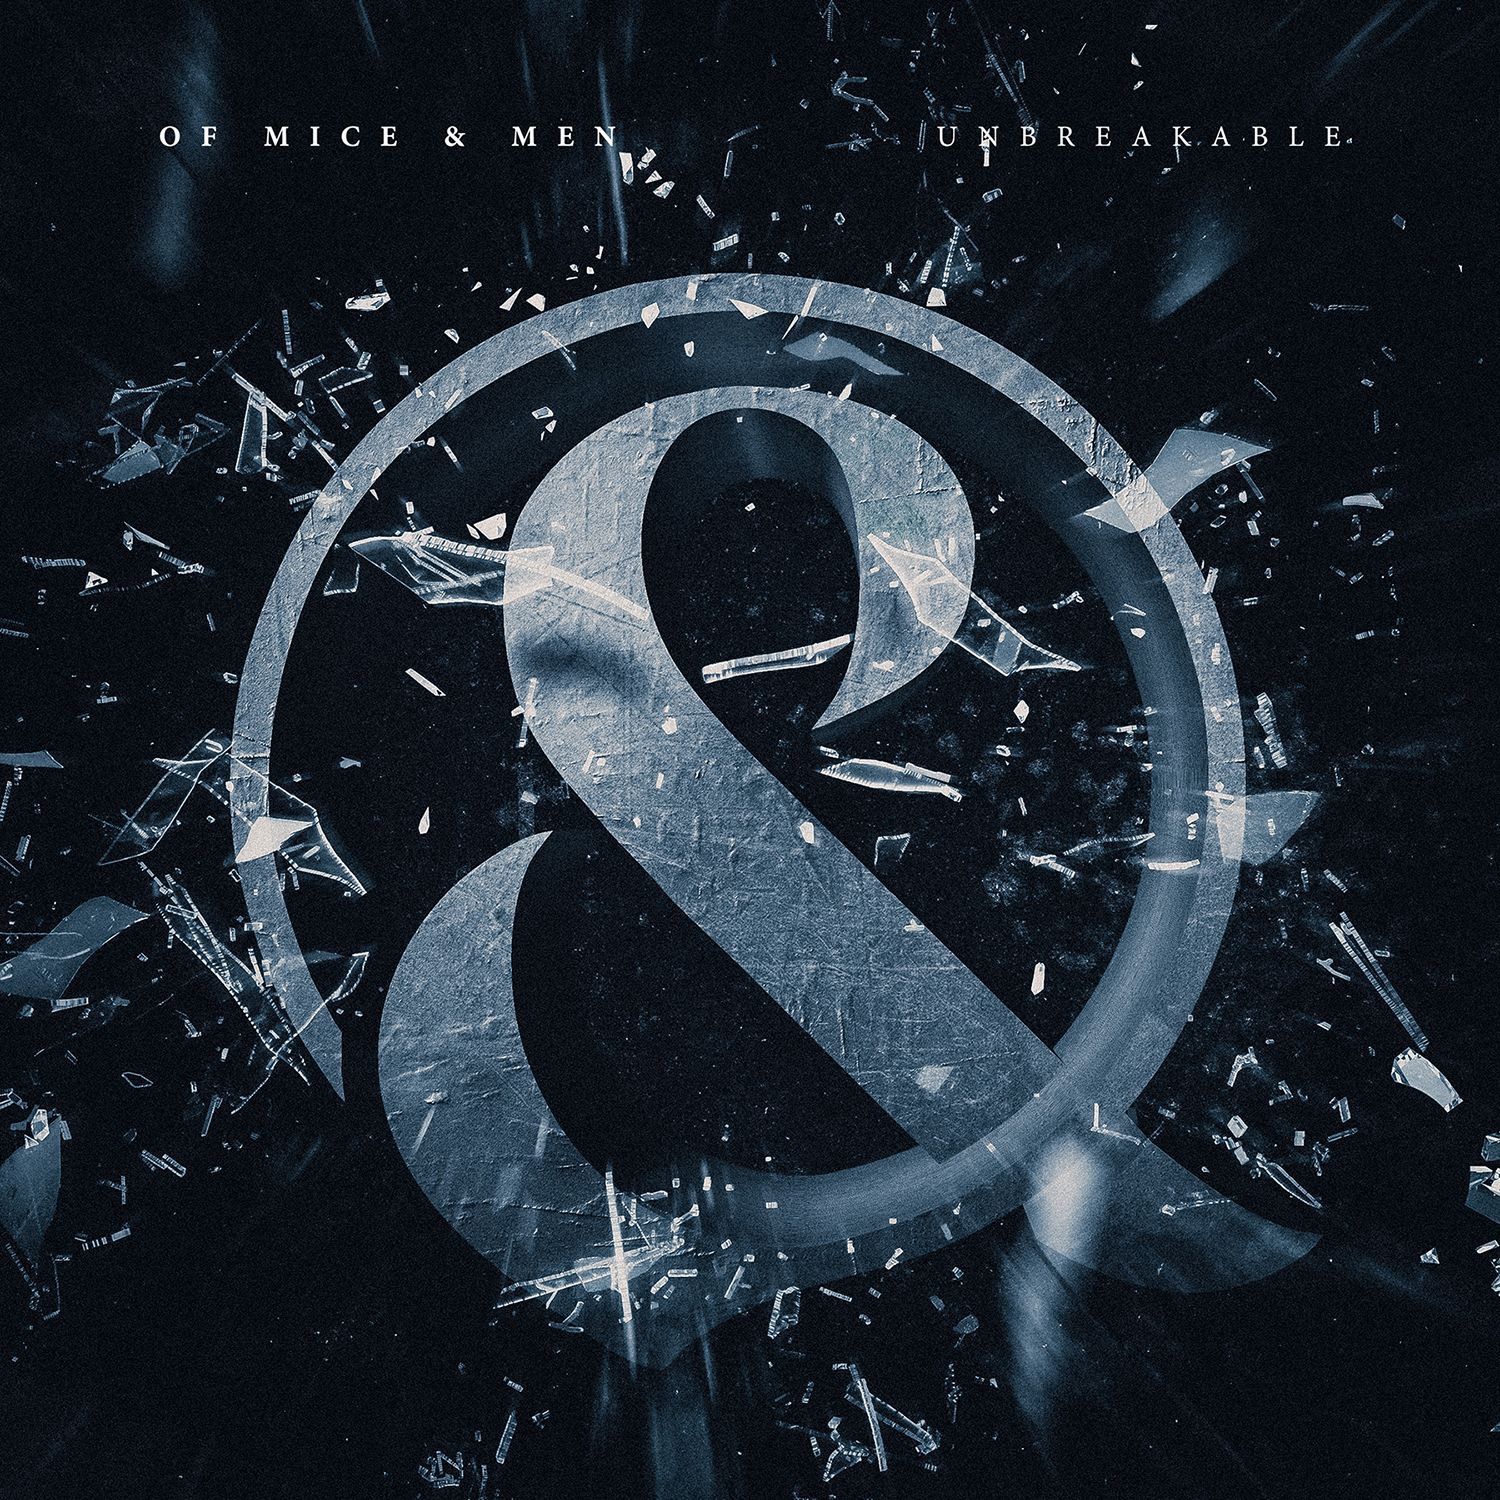 Of Mice & Men - Unbreakable [single] (2017)